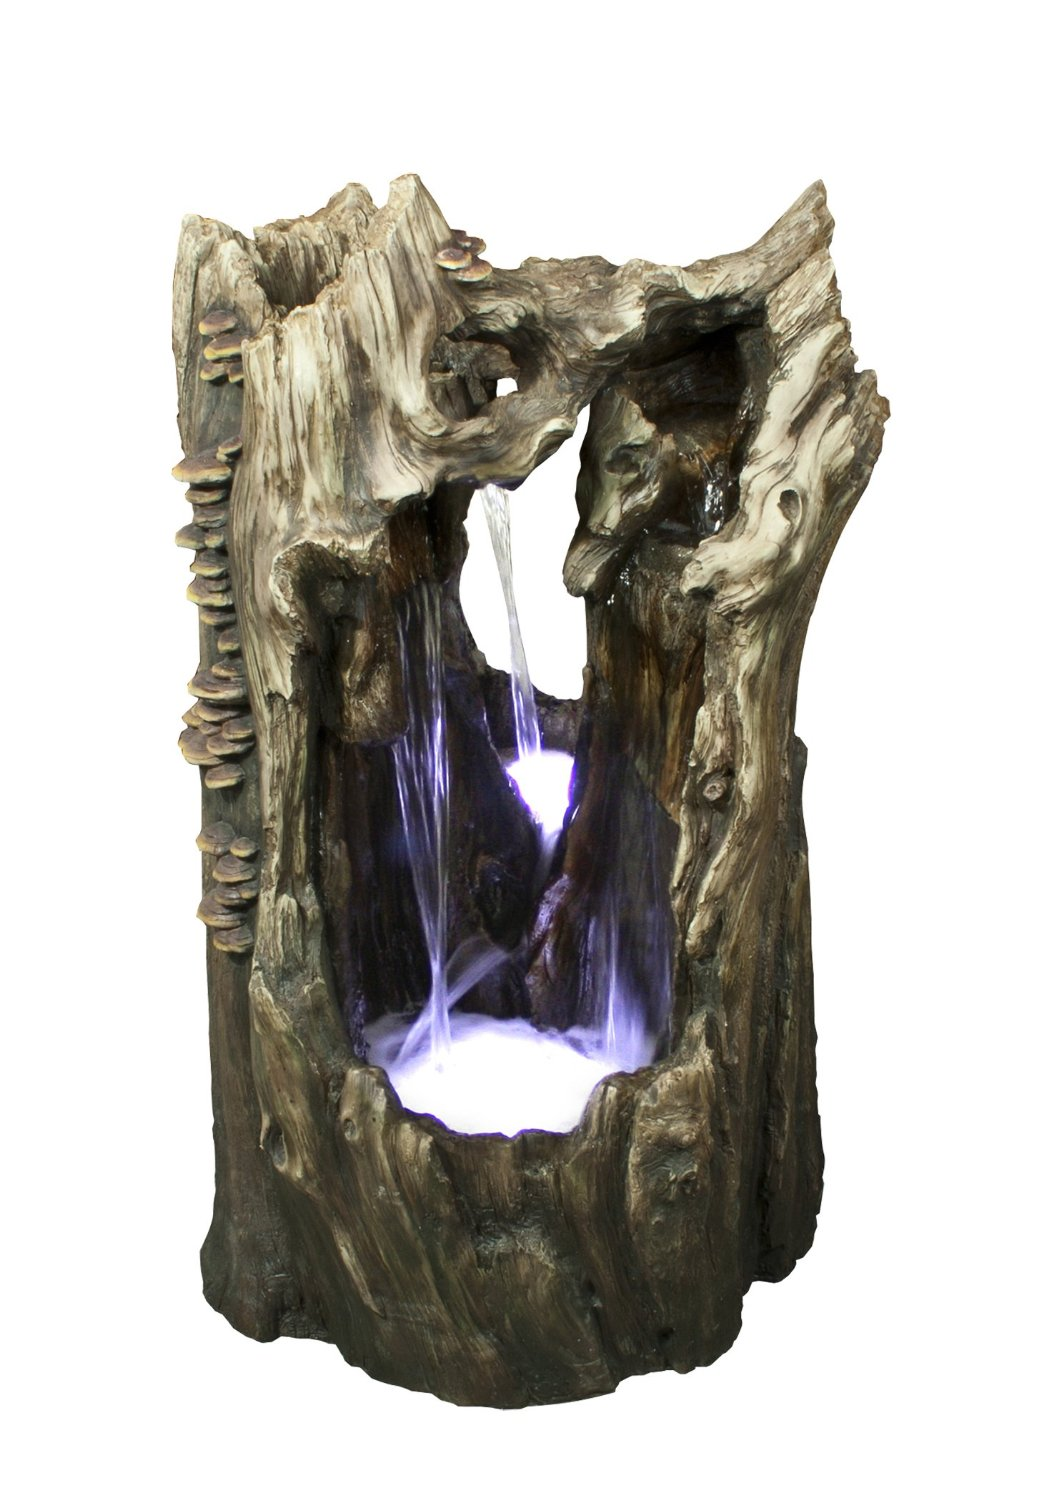 38 Inch Rainforest Waterfall Fountain Led Lights by Benzara